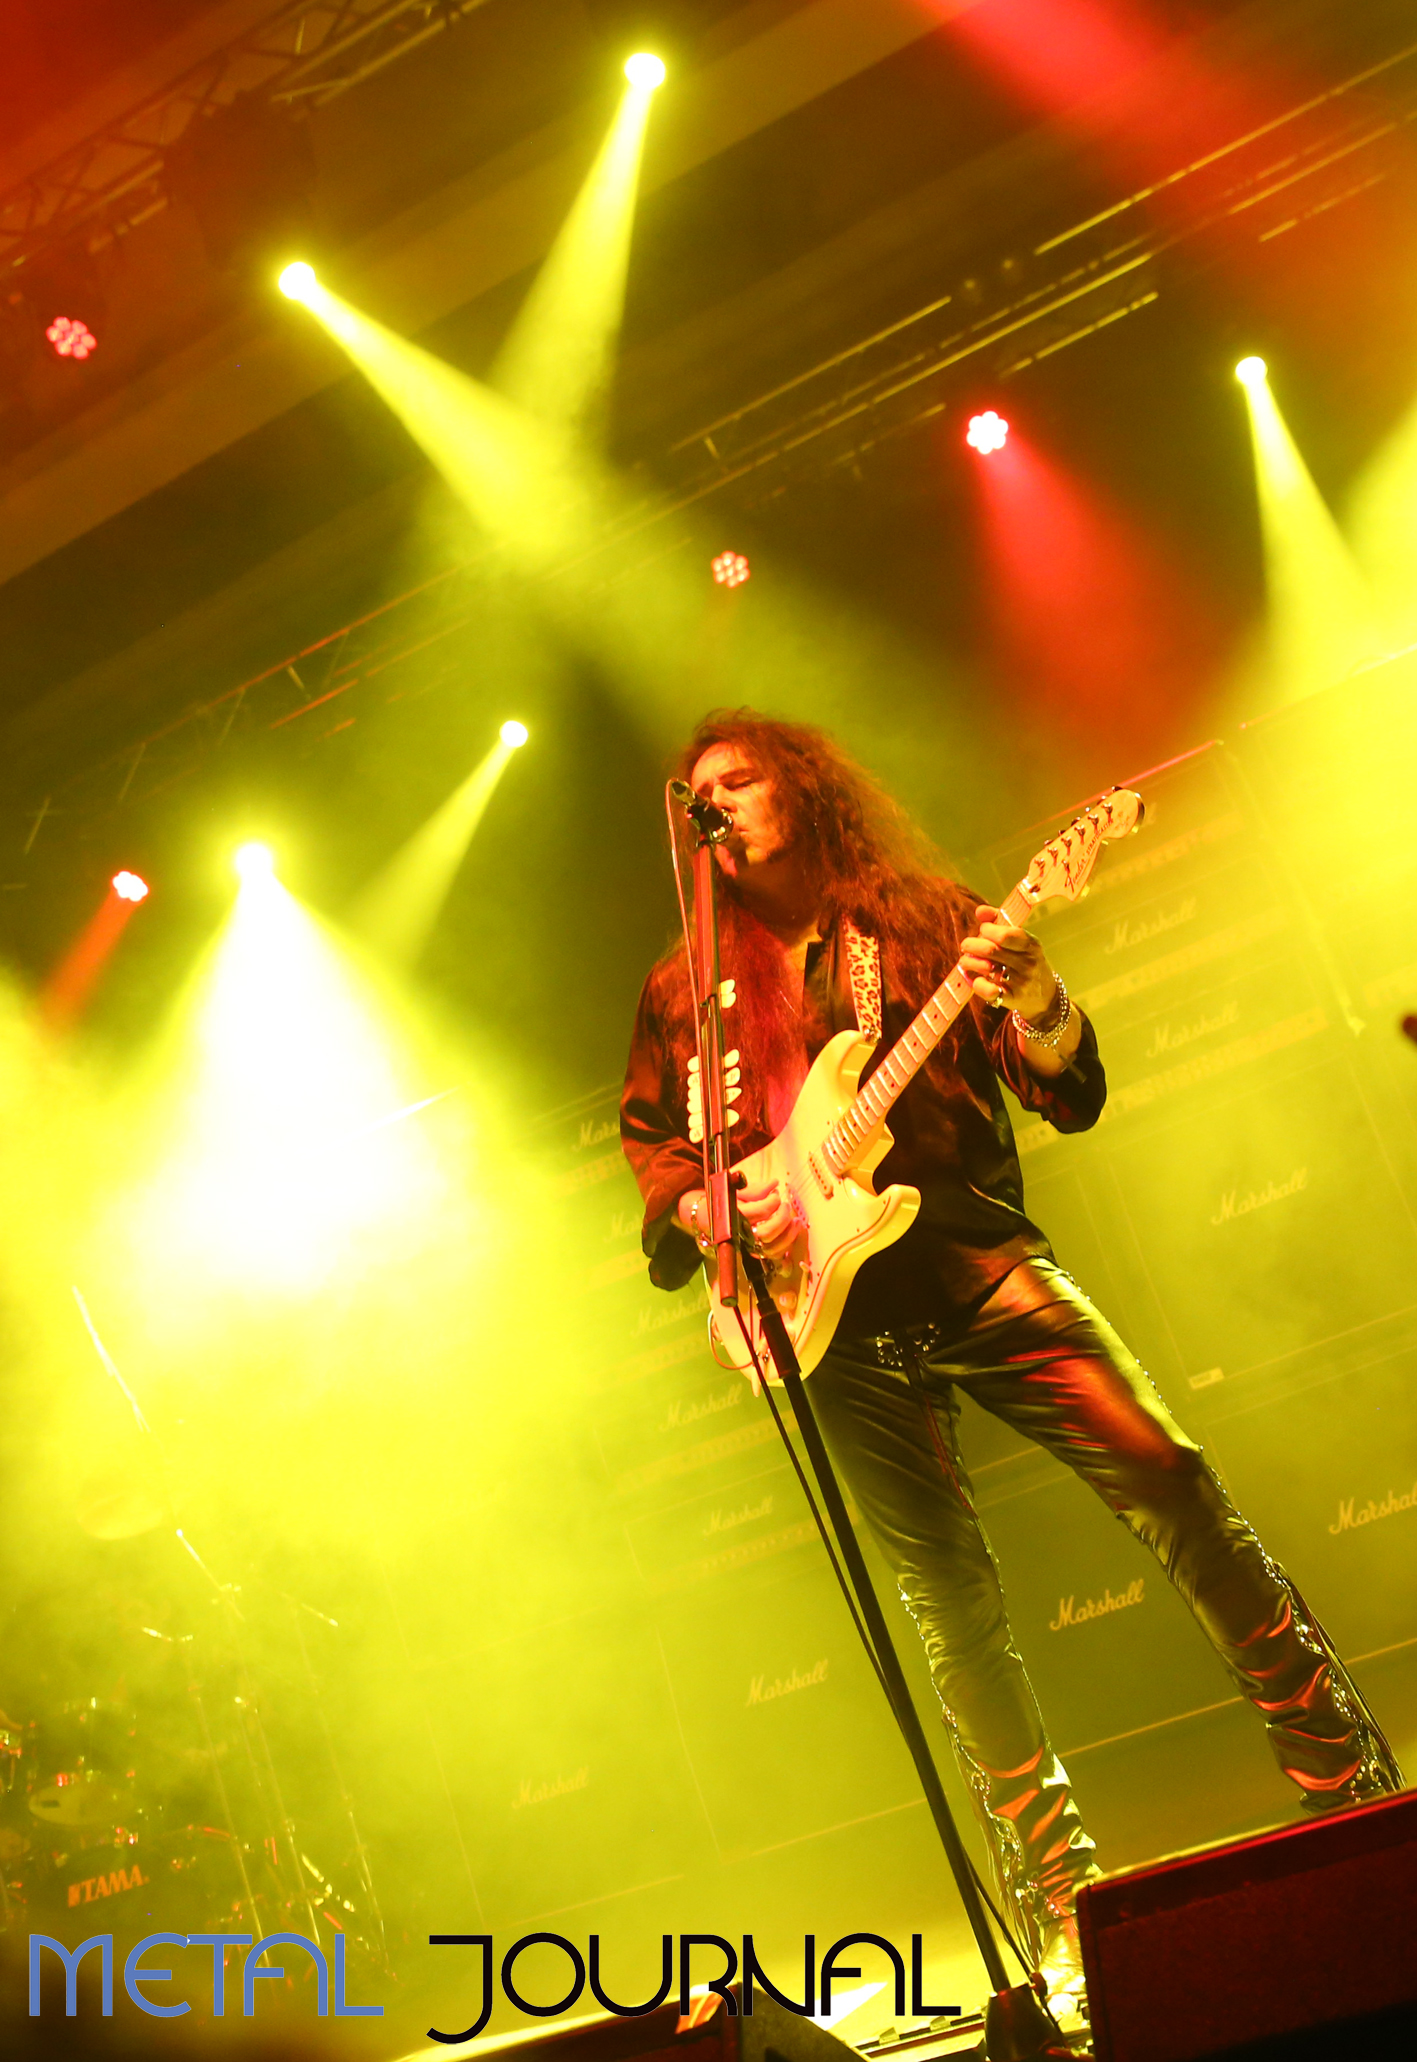 yngwie malmsteen - santander 2018 metal journal pic 5